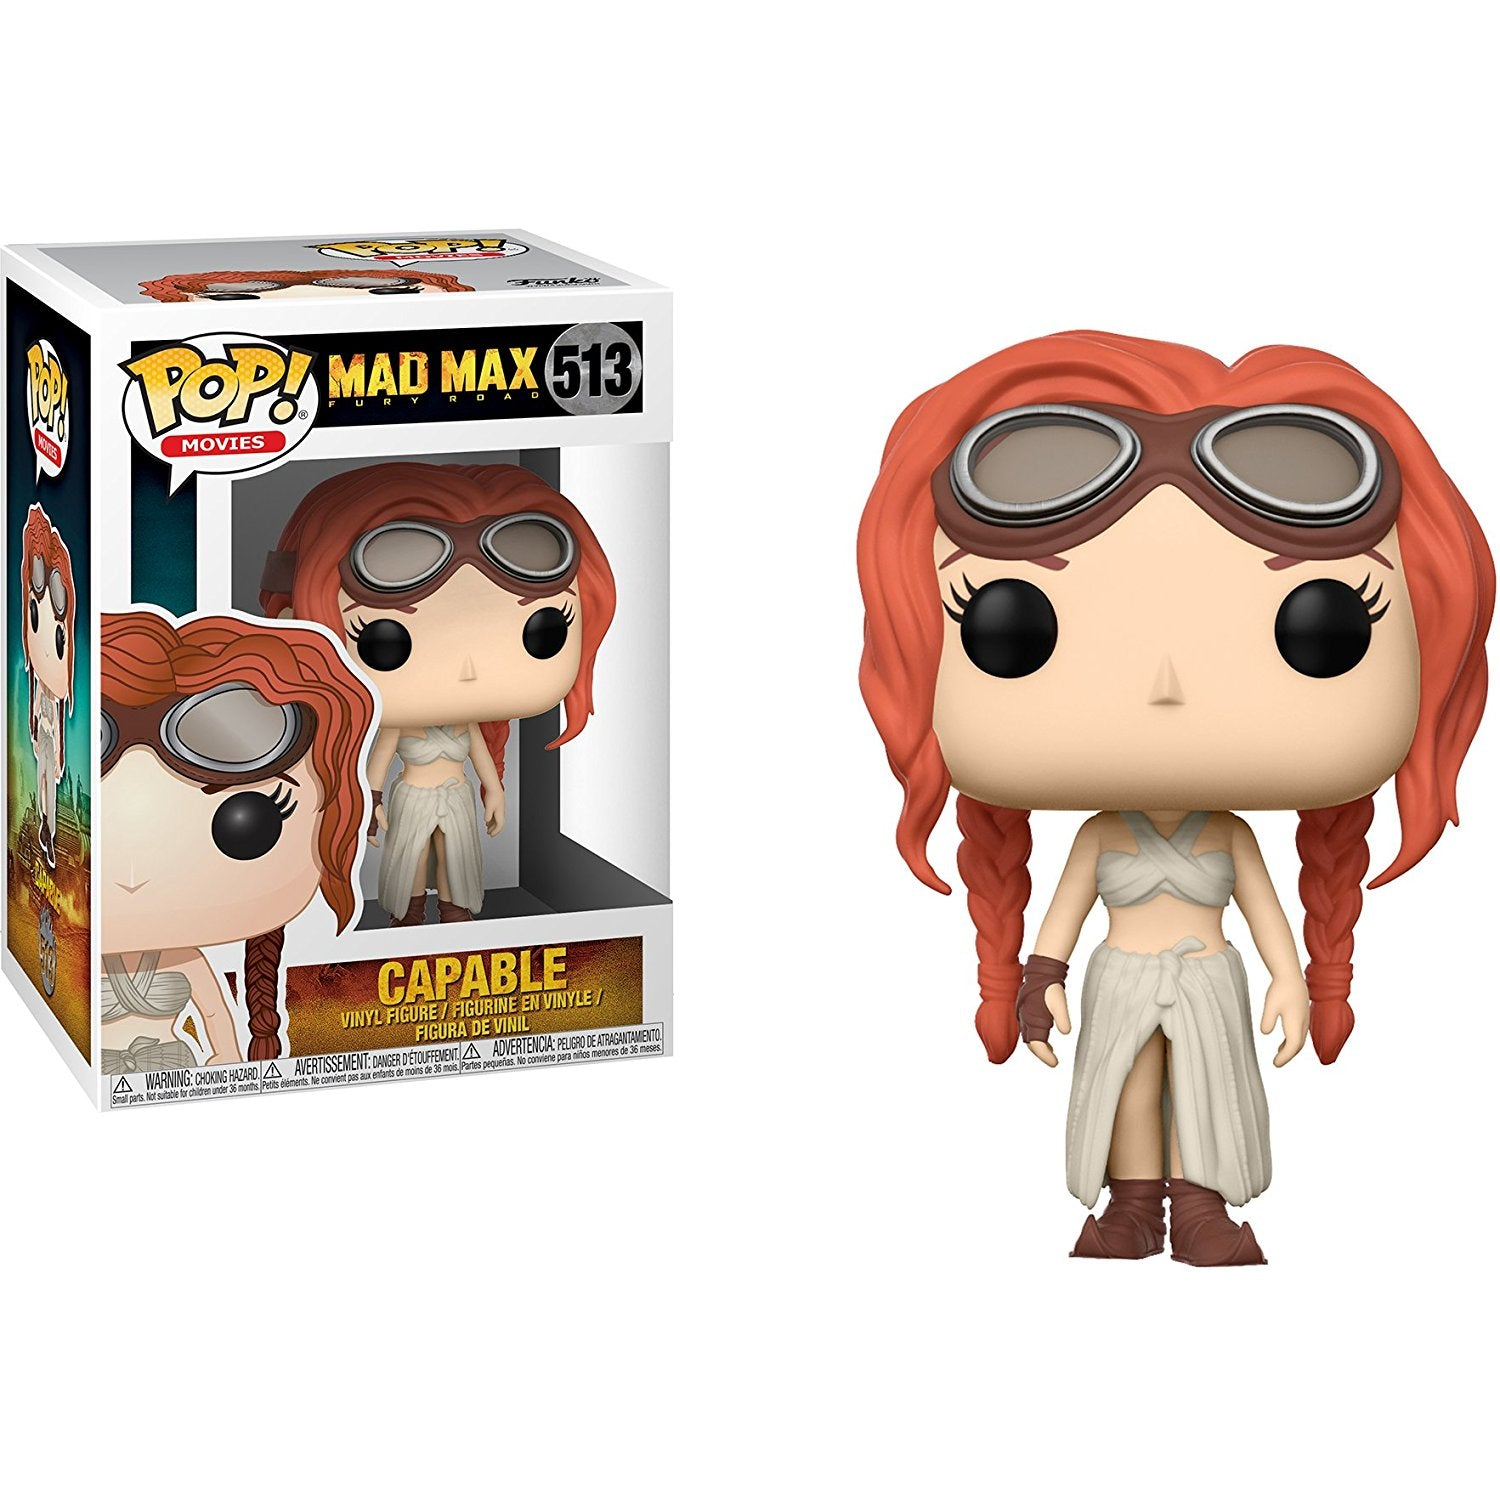 Capable Funko Pop! Movies Mad Max Fury Road